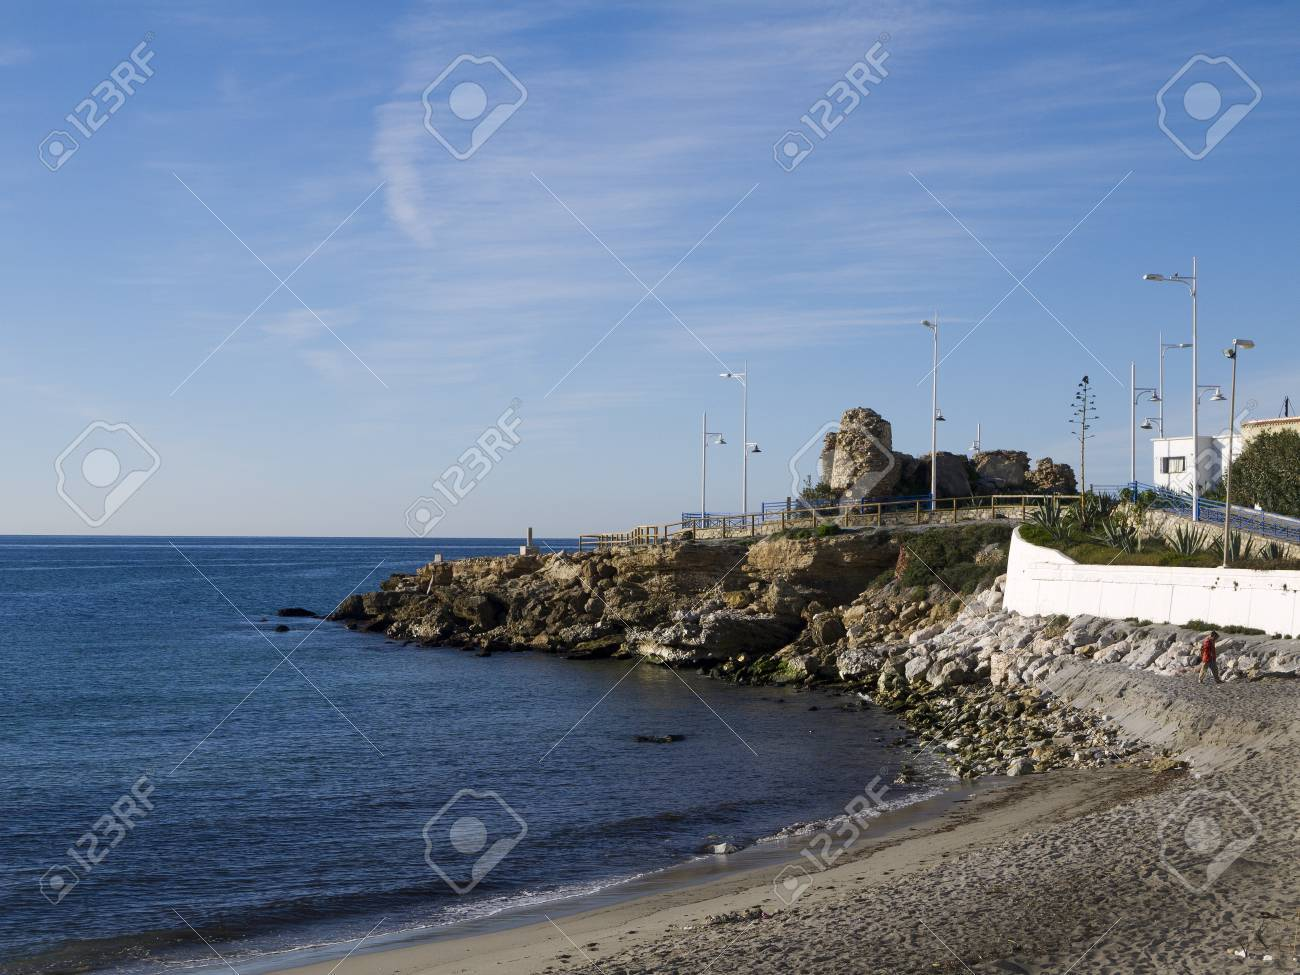 Beach at Nerja Andalucia Spain Stock Photo - 17562426